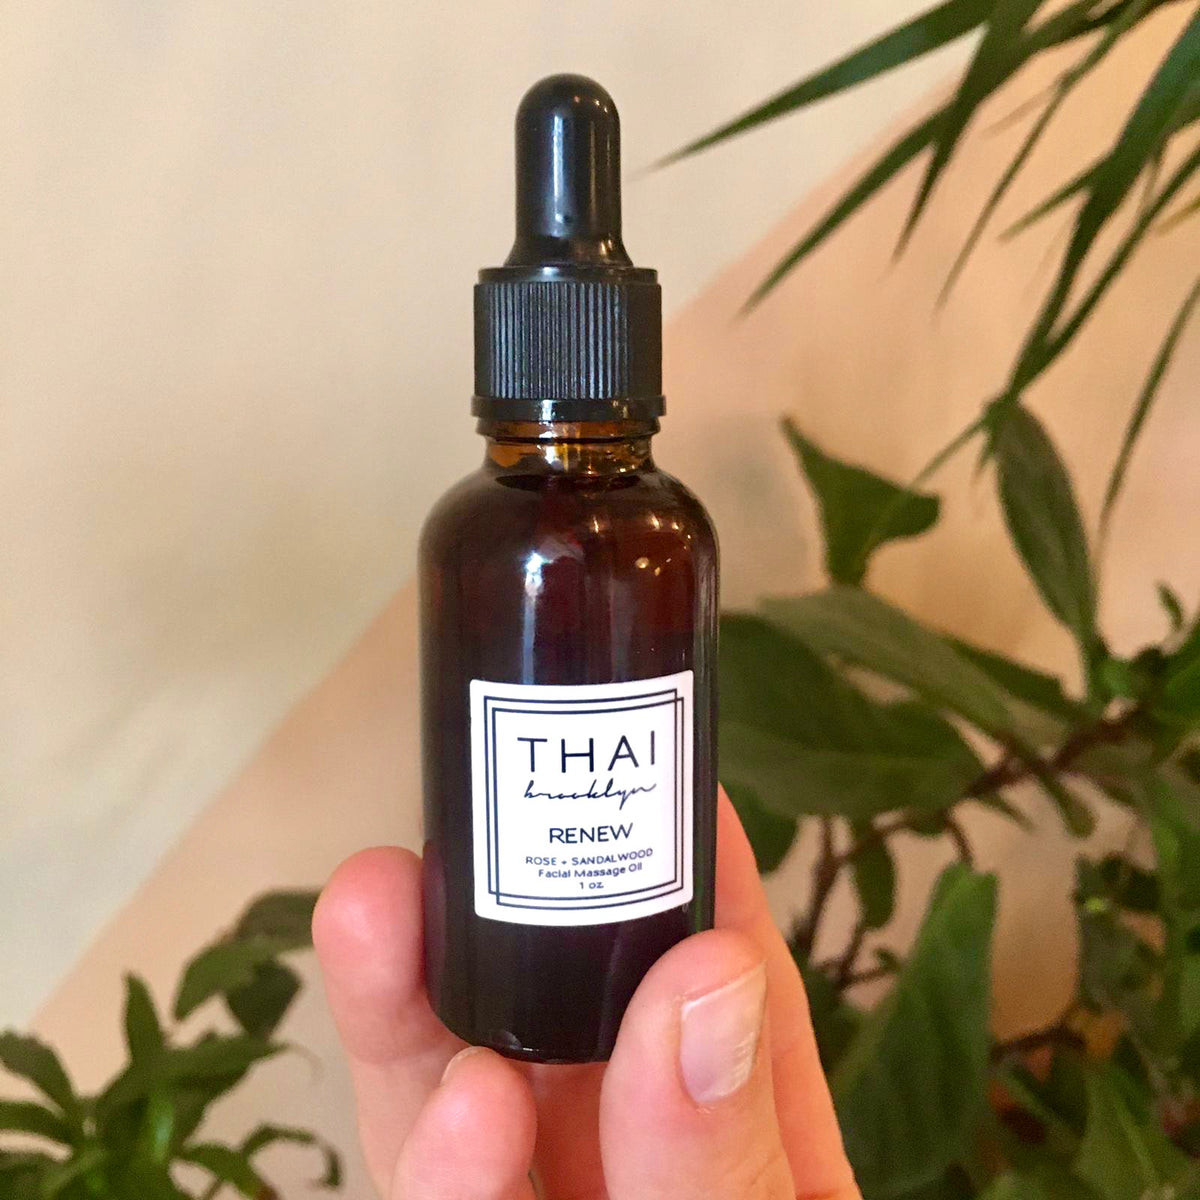 Thai Brooklyn - RENEW Facial Massage Oil